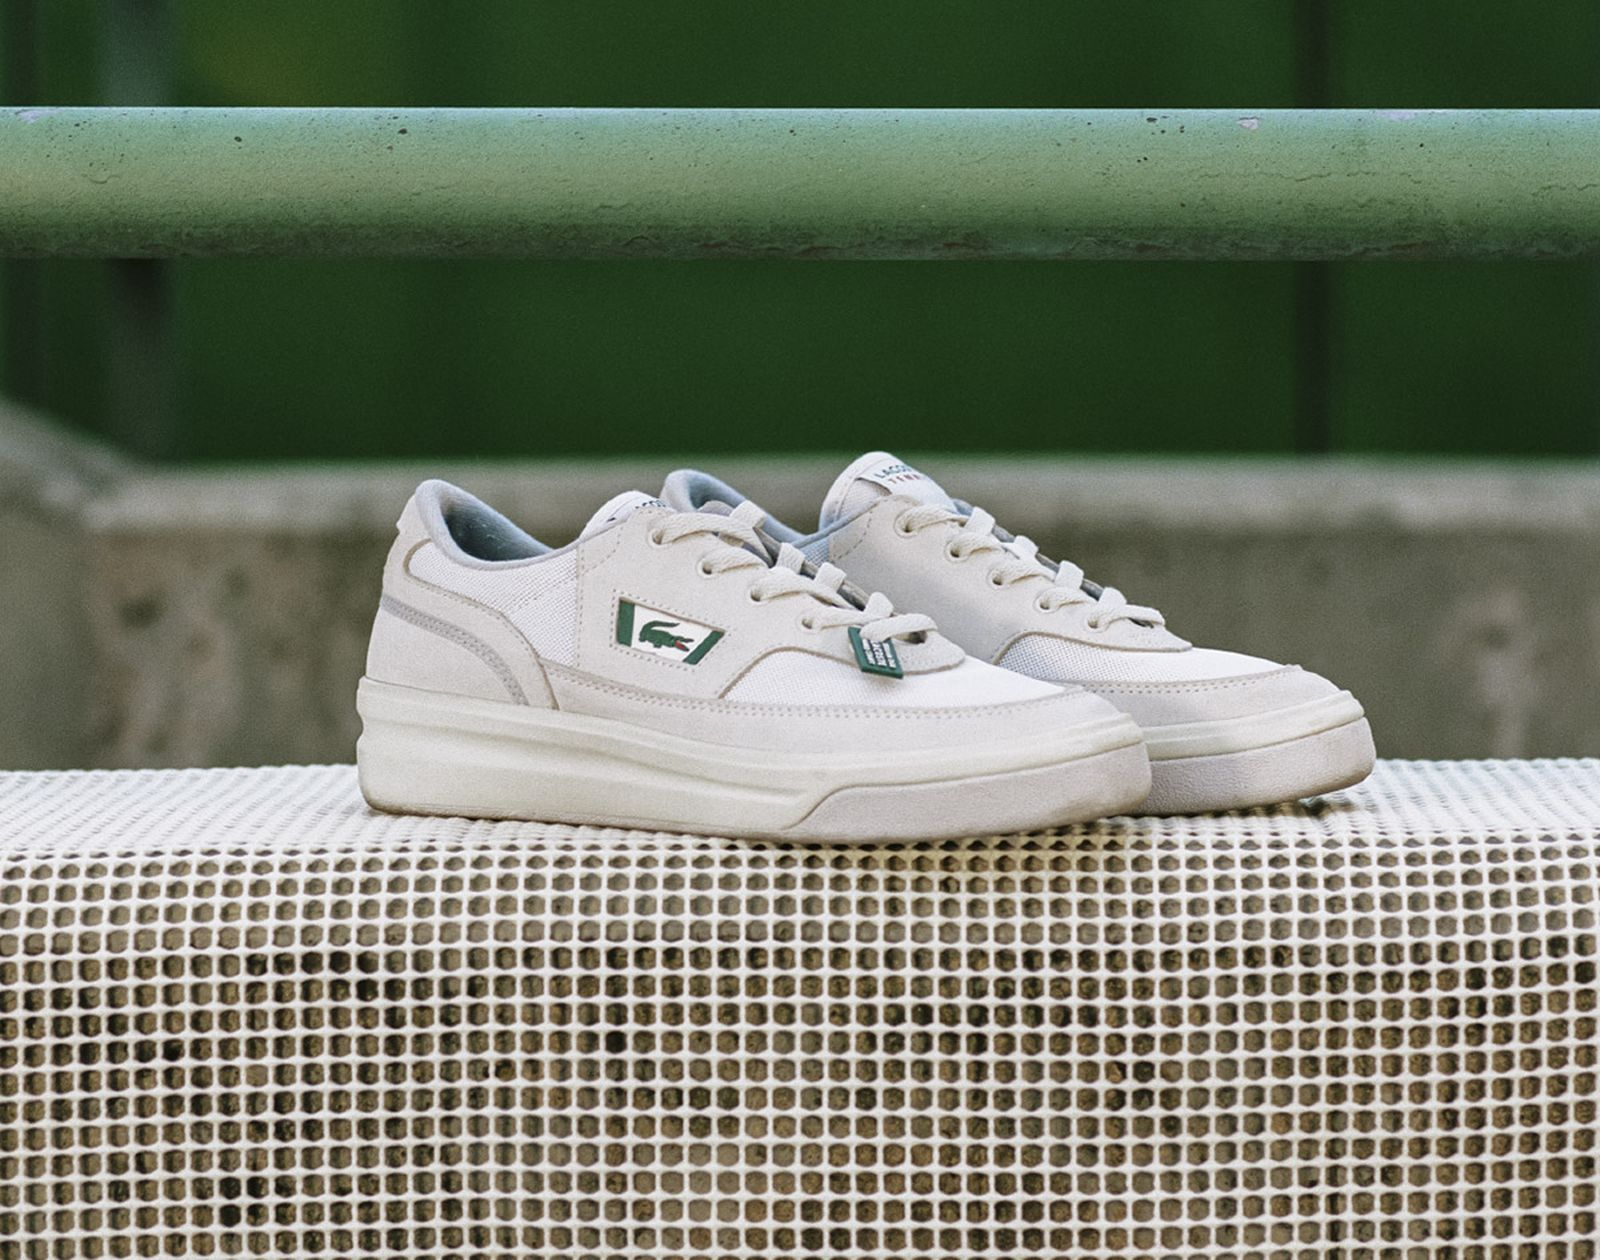 lacoste-heritage-pack-14